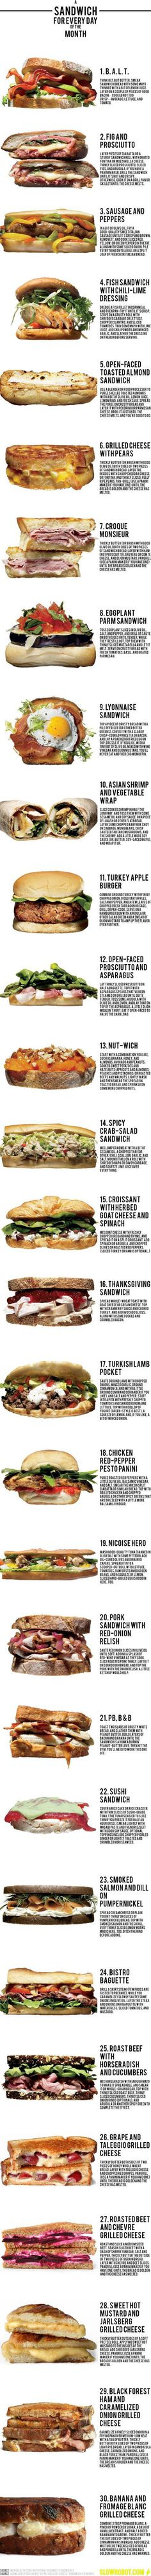 A sandwich for every day of the month...I'm hungry now